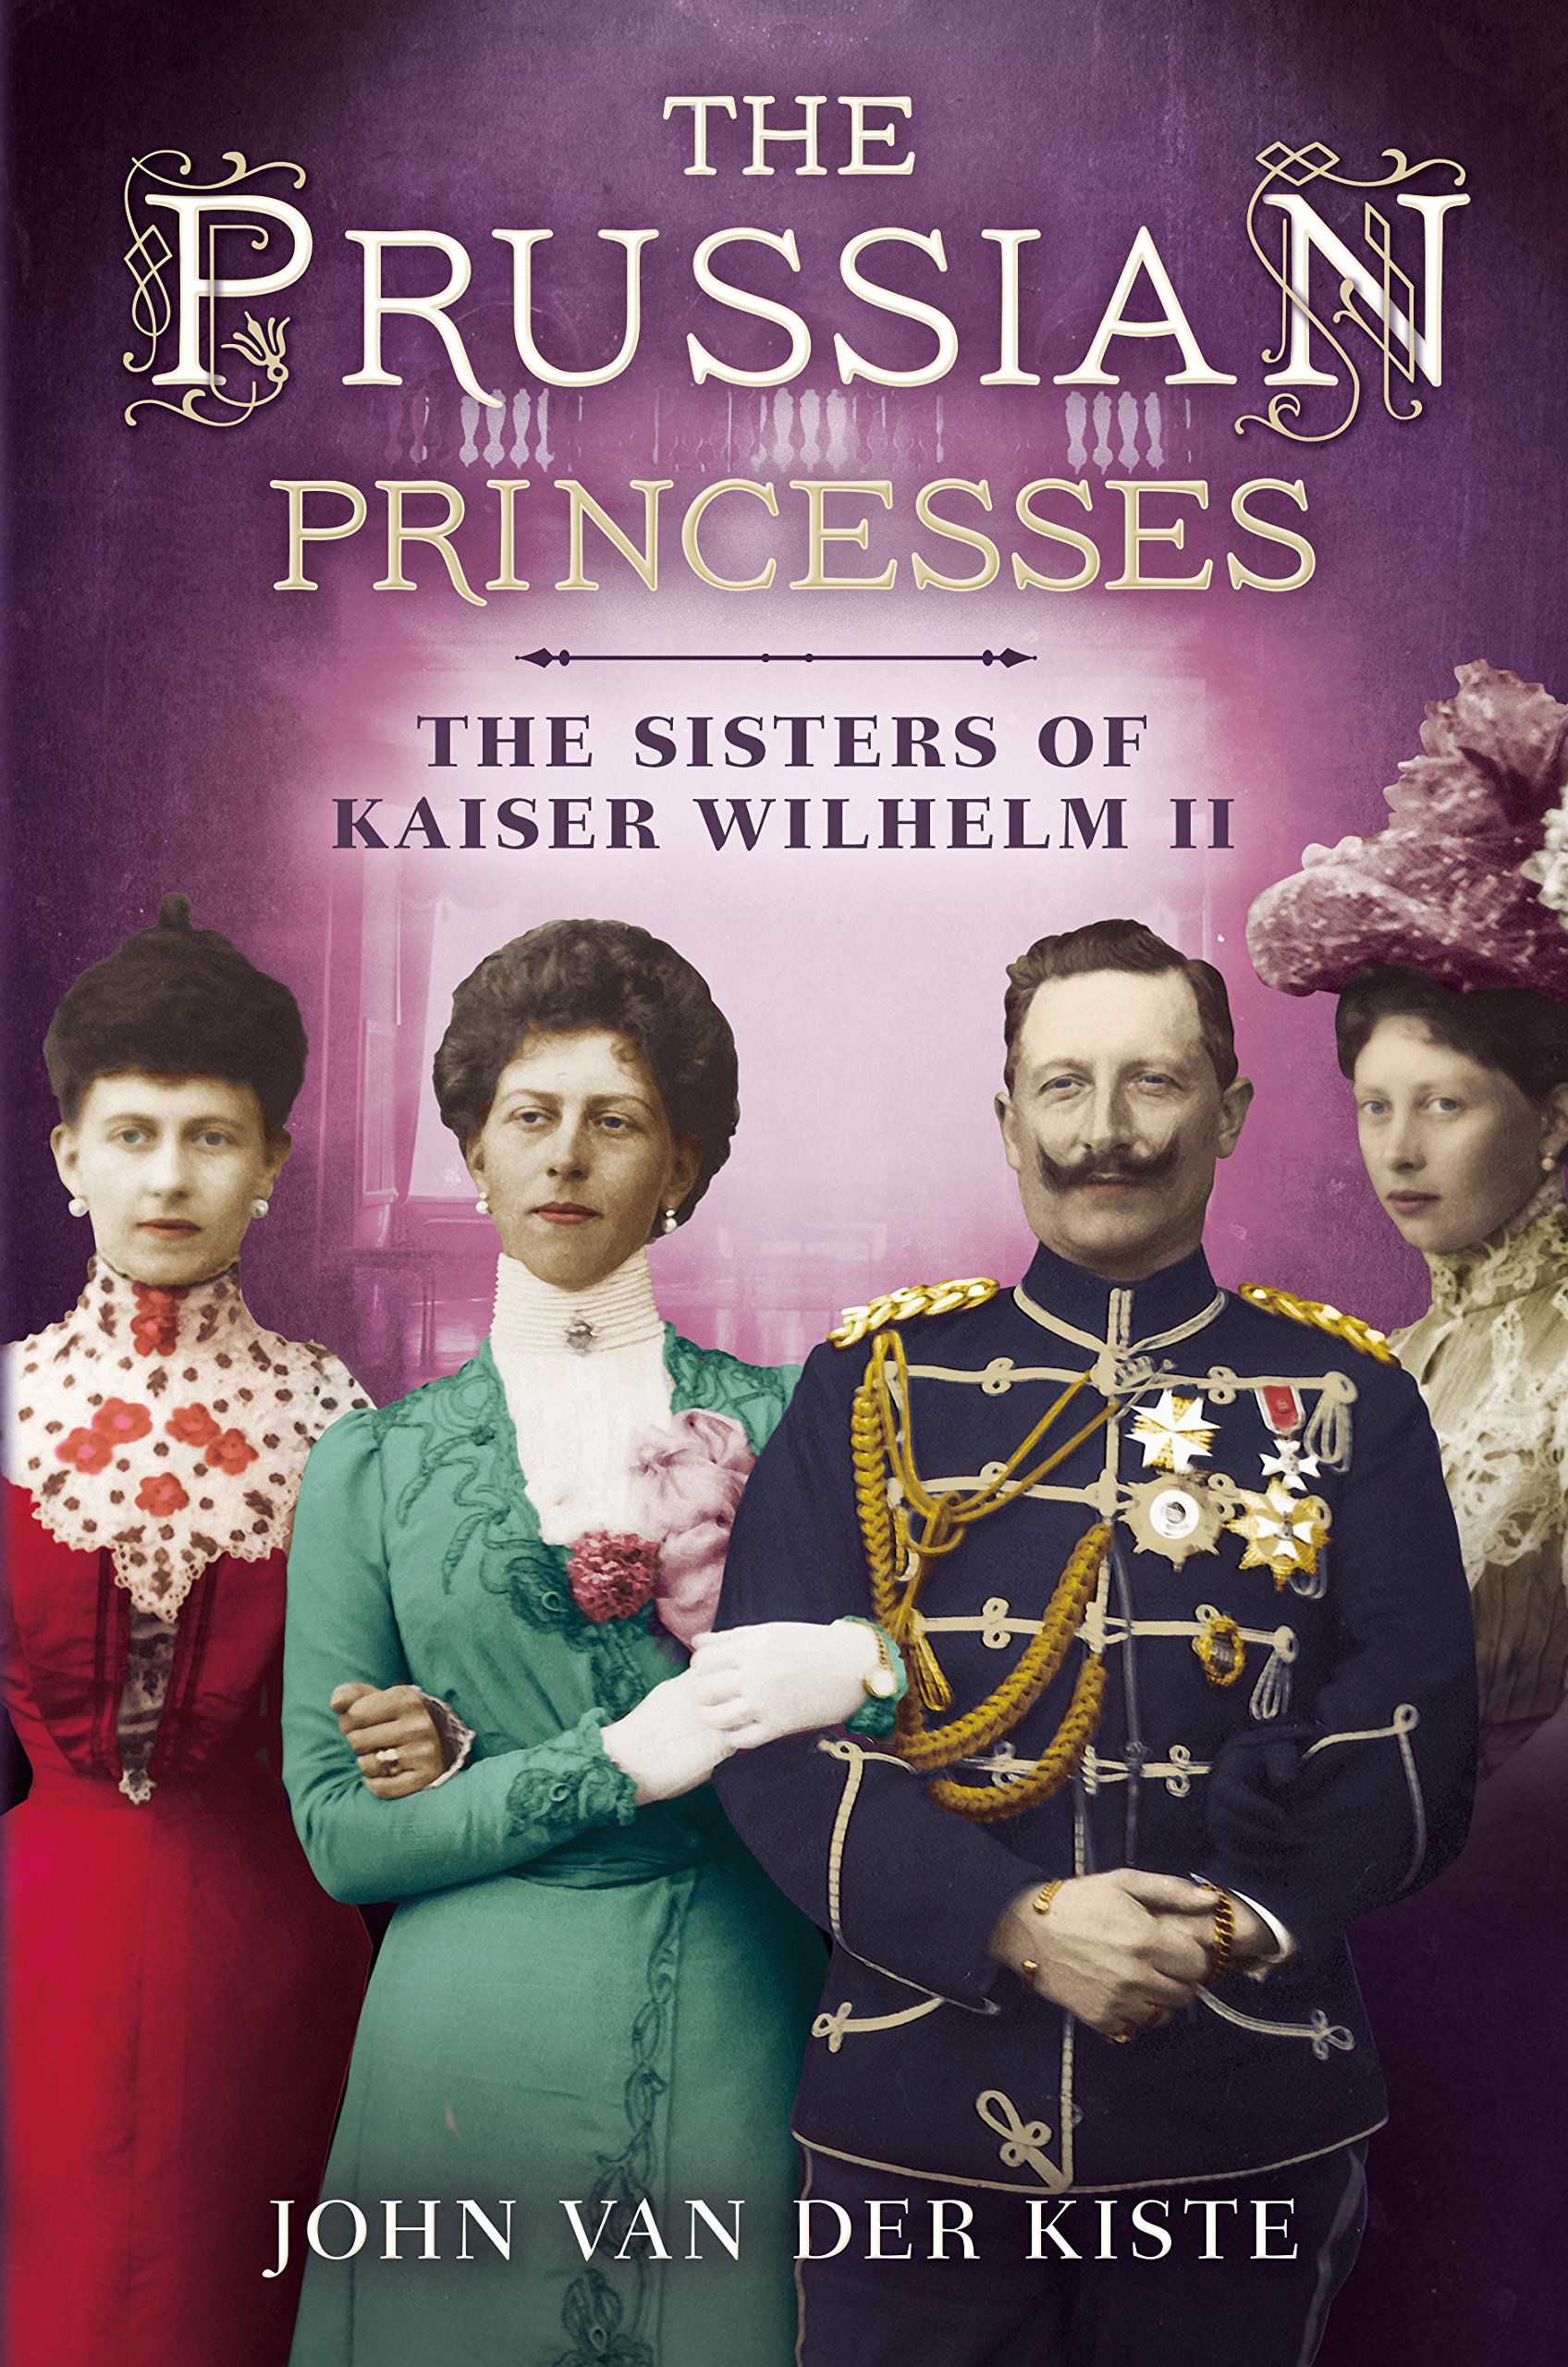 Amazon.com: Prussian Princesses: The Sisters of Kaiser Wilhelm II  (9781781554357): John Van Der Kiste: Books